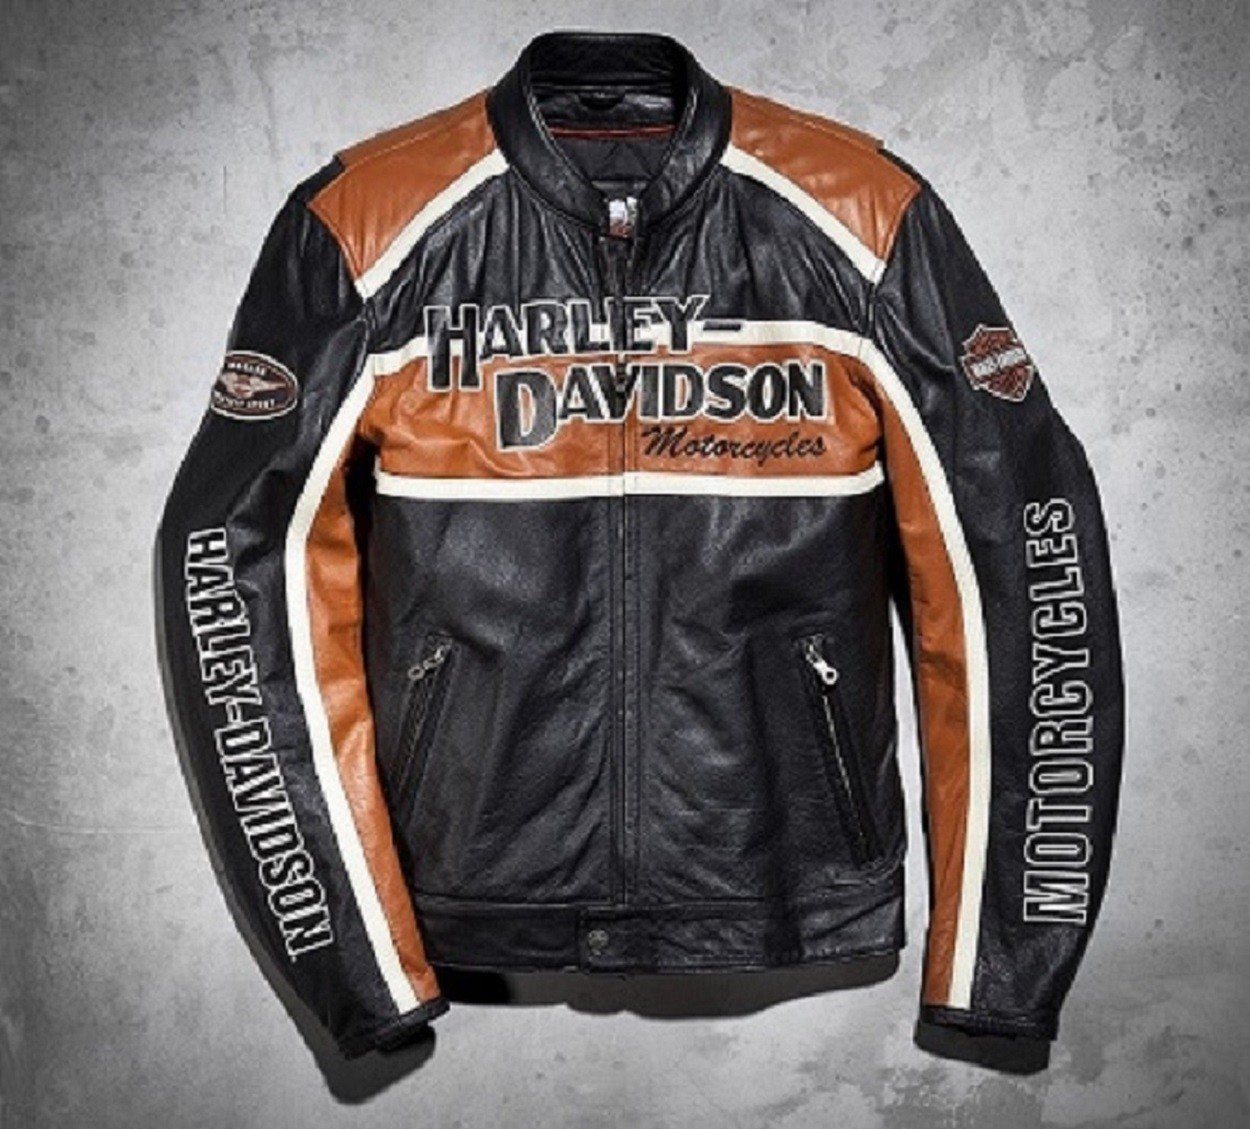 Harley Davidson Classic Cruiser 98118-08VM Leather Jacket